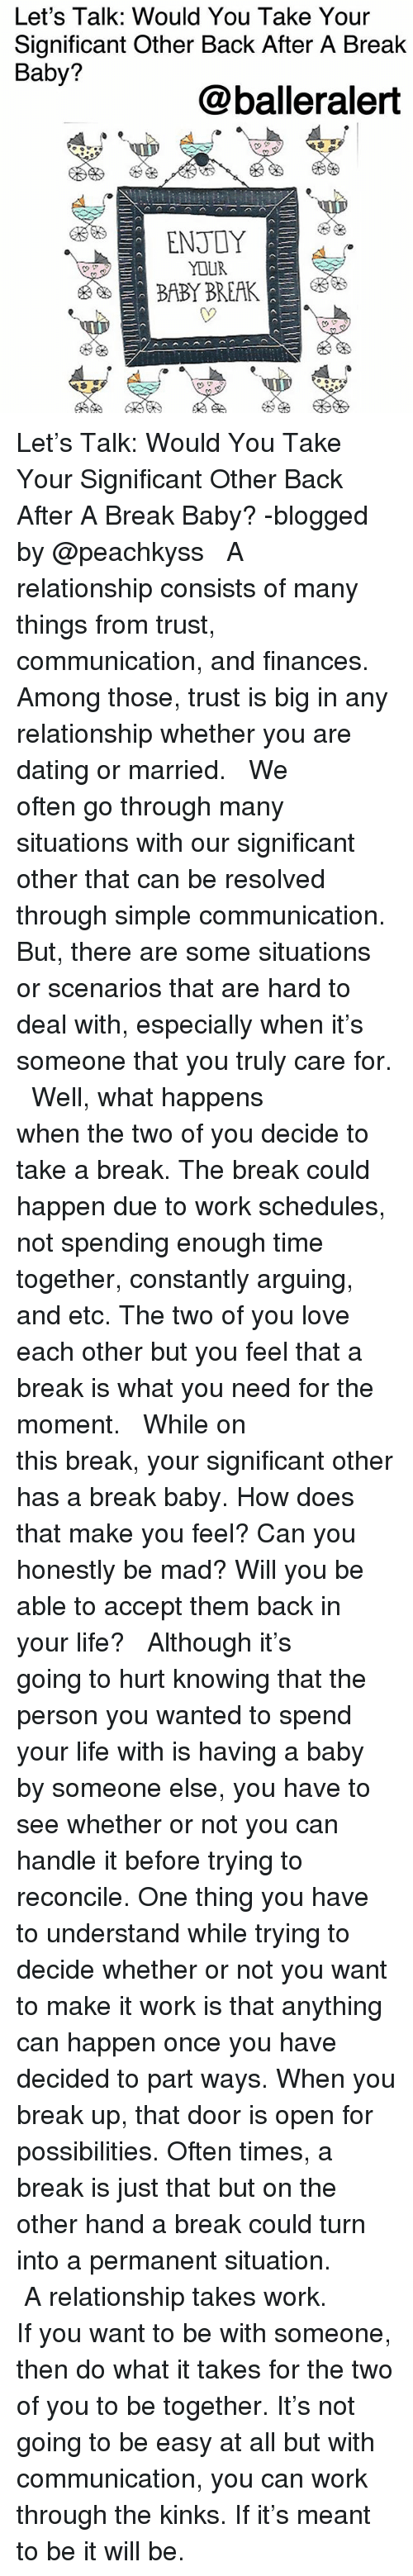 what happens when you take a break from relationship